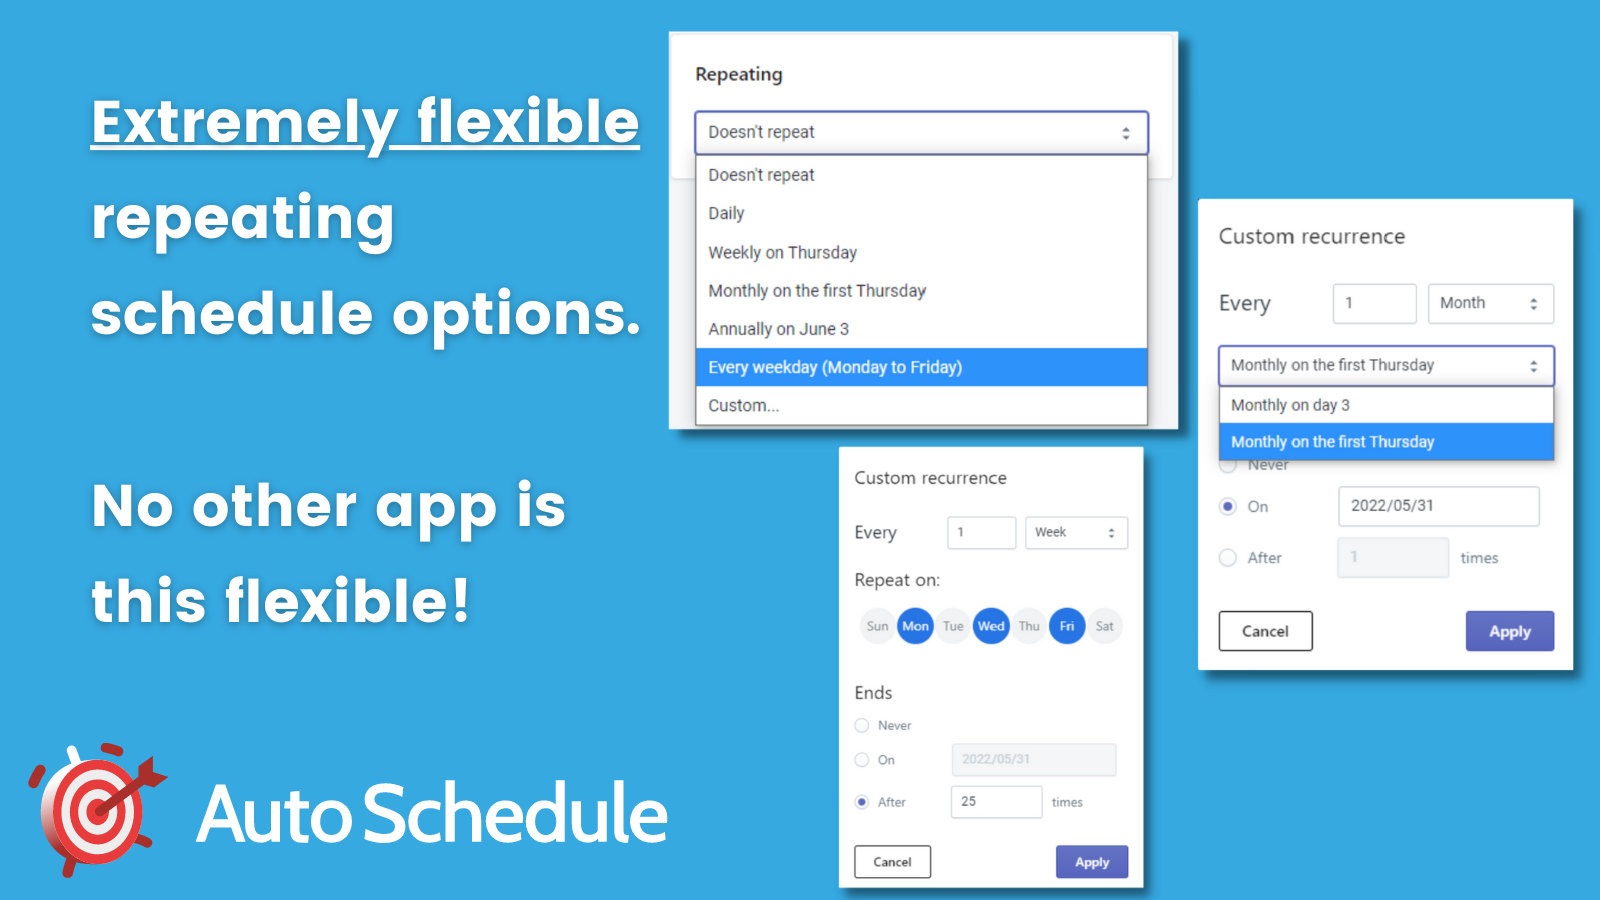 Extremely flexible repeating schedule options.